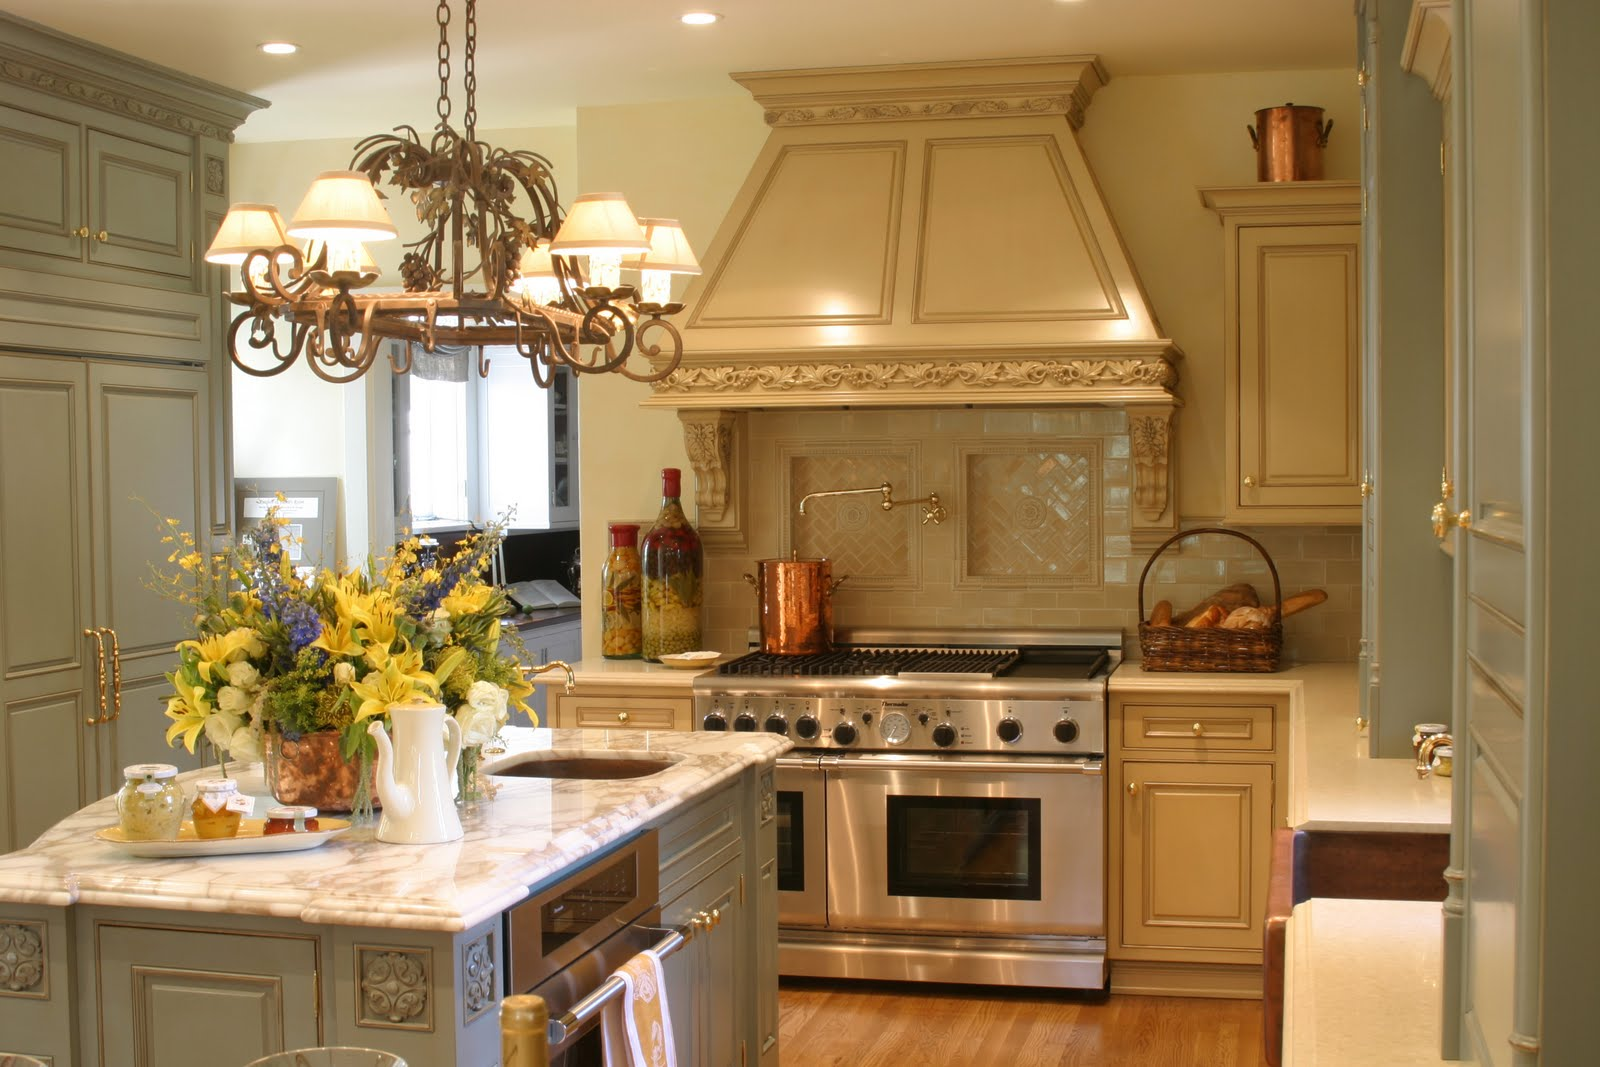 cost of small kitchen remodel kitchen remodel cost of small kitchen remodel photo 2